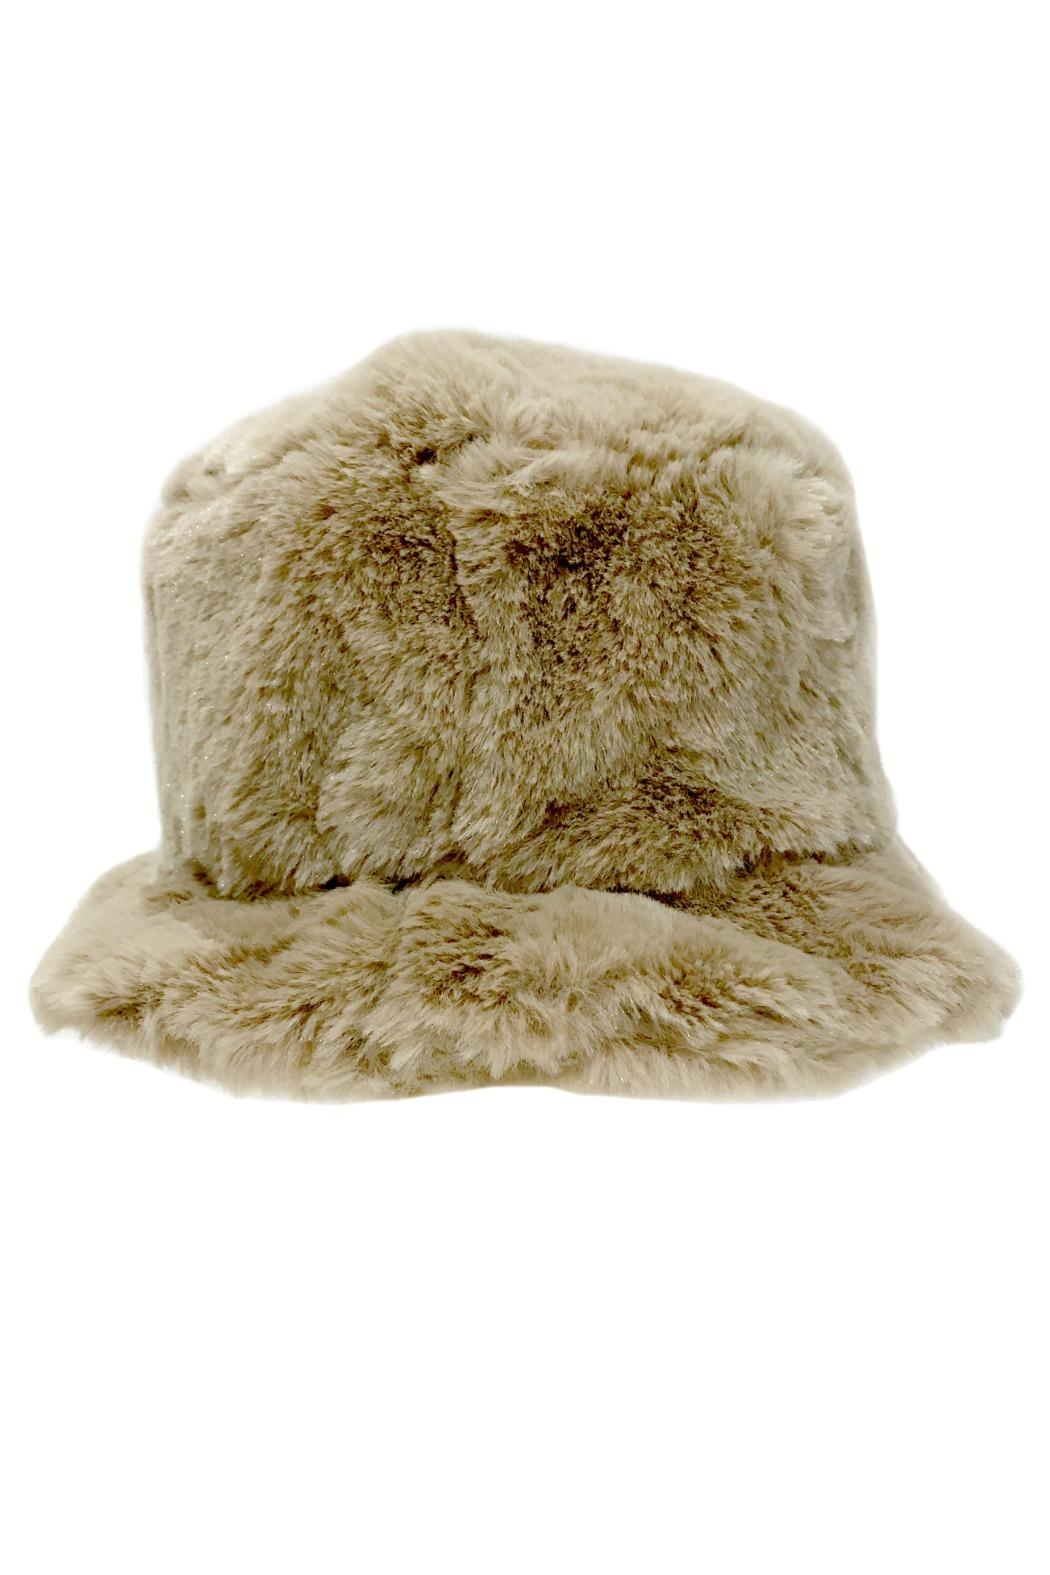 ANTONELLO SERIO Faux Fur Hat - Main Image